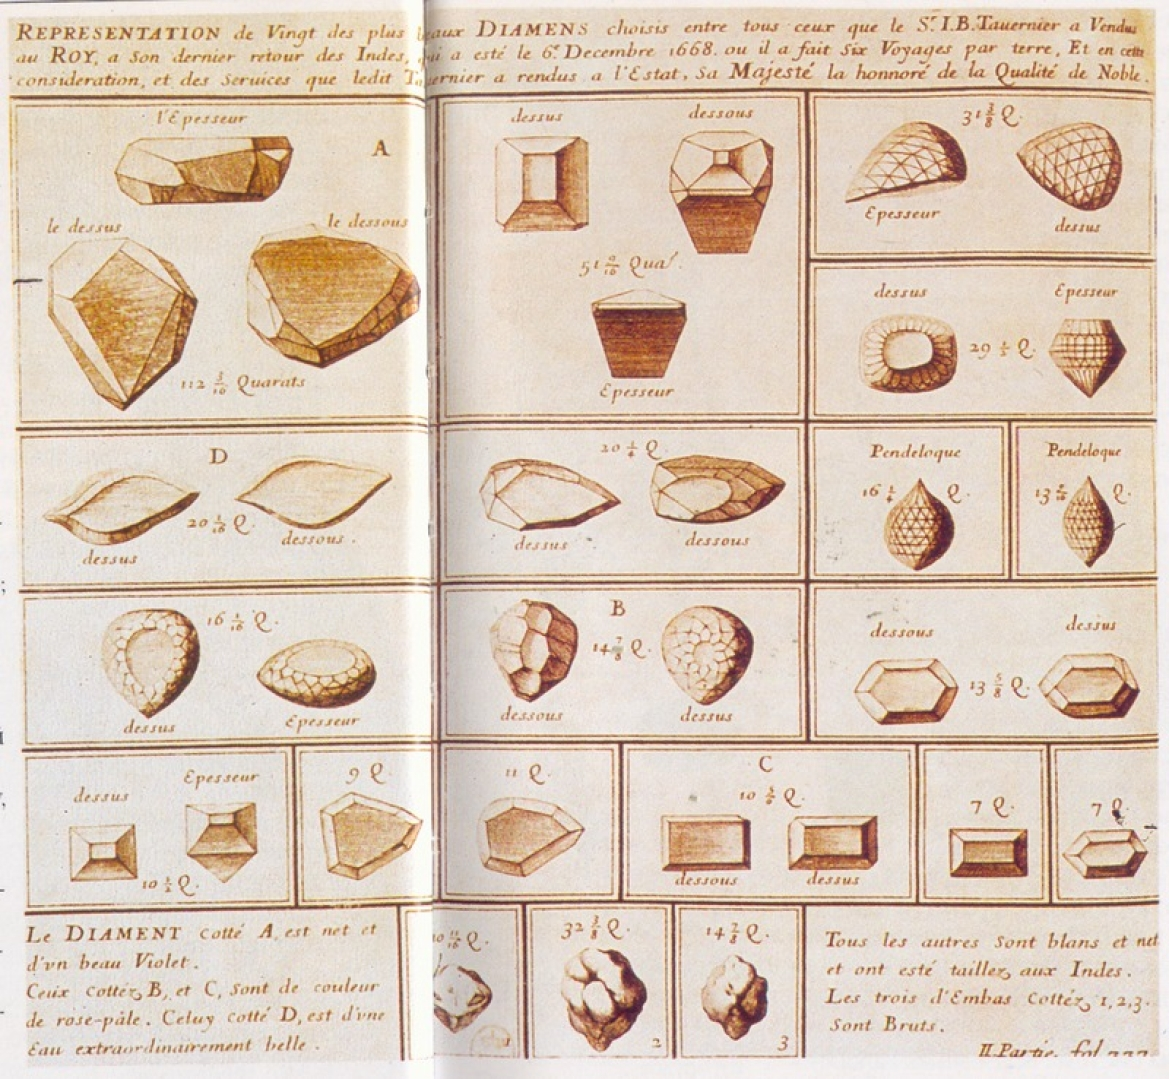 Tavernier's sketches of the different gems he brought back to France from Golconda (Gem A is the Tavernier Blue Diamond)